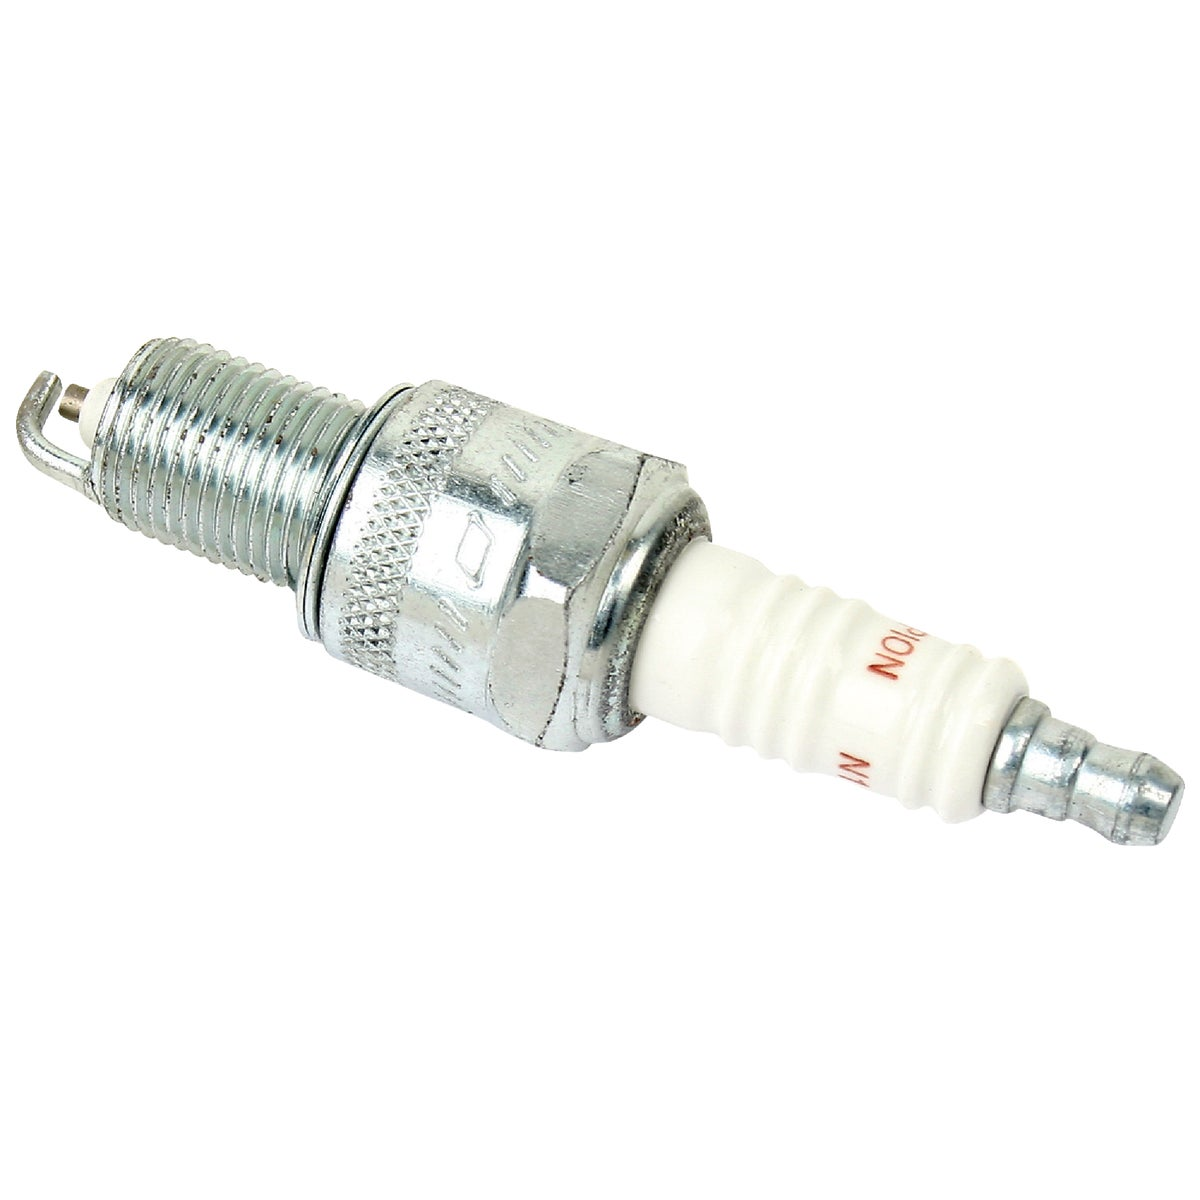 R HTR R35-R60 SPARK PLUG - PP212 by World Marketing